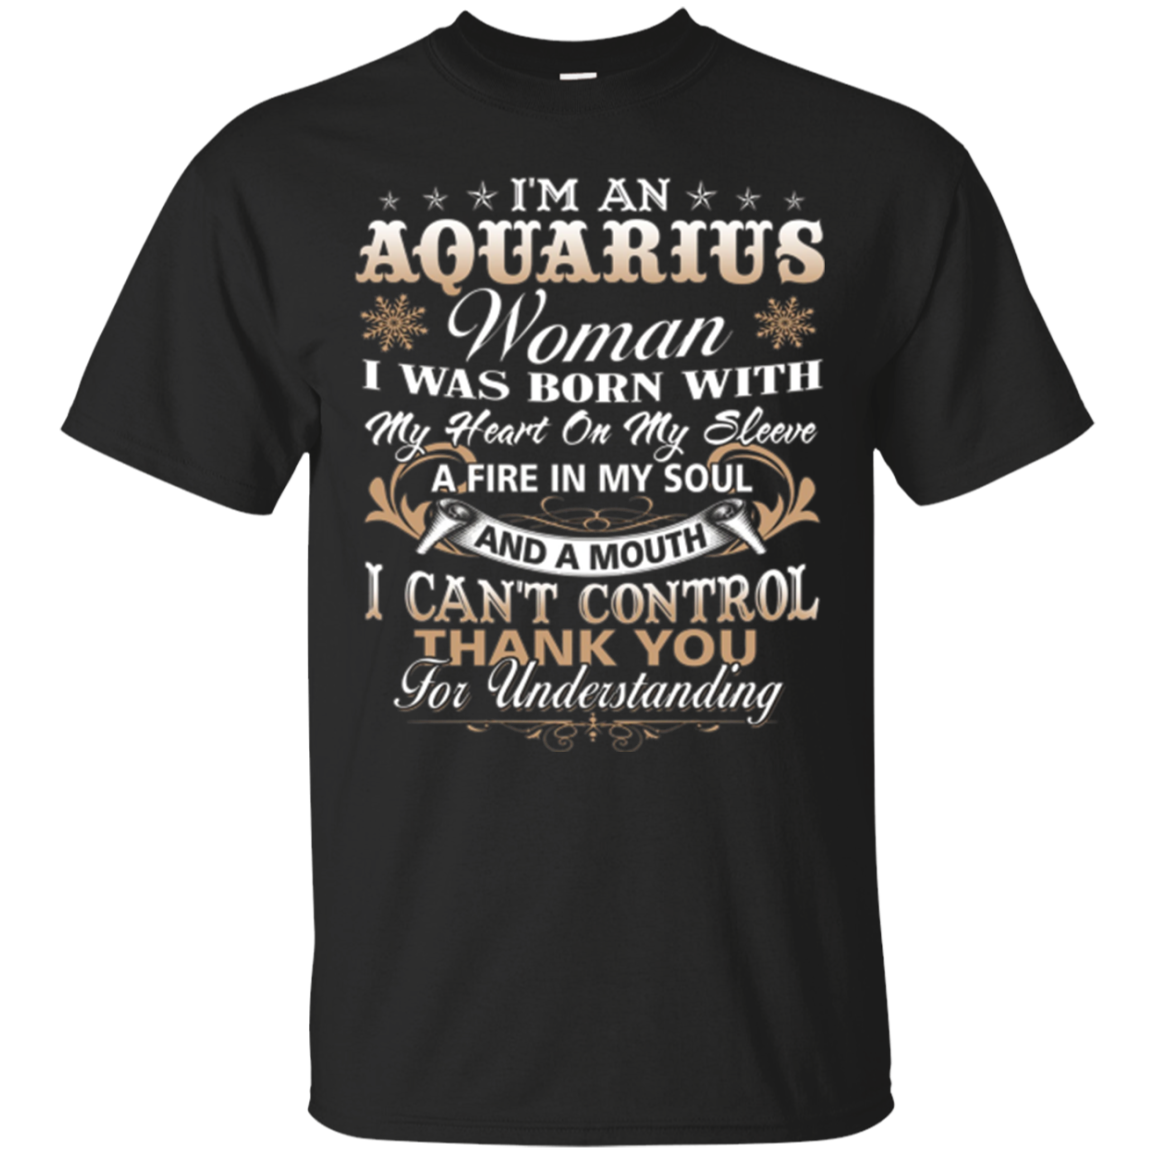 I'm An Aquarius Woman T-Shirt Funny Aquarius Shirt